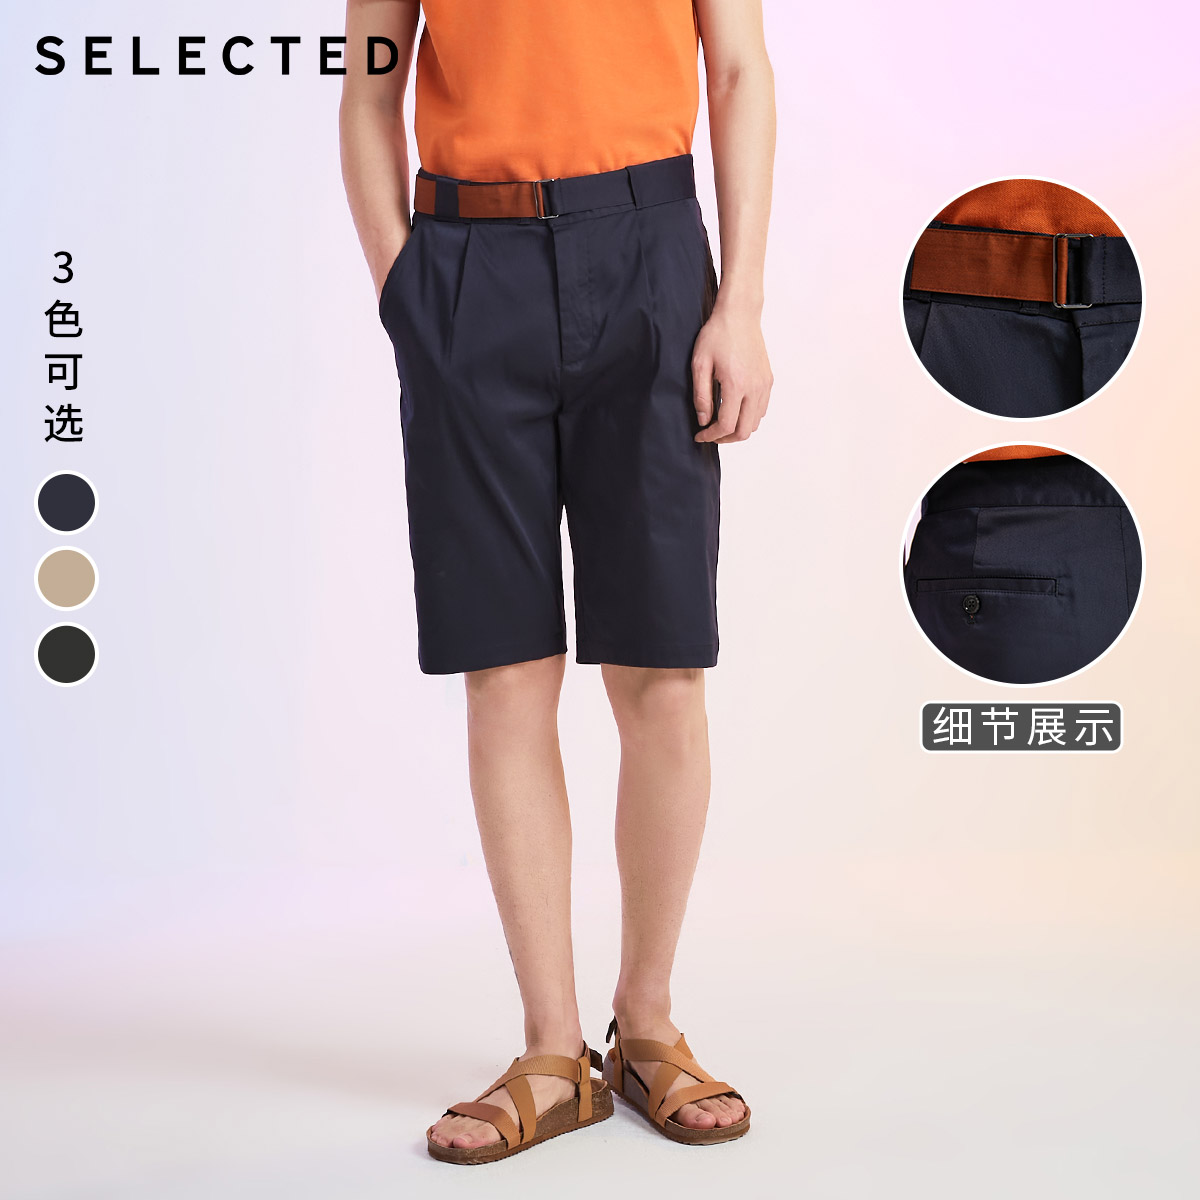 SELECTED Men's Loose Fit Waist Belt Assorted Colors Shorts LAB|4202SH519